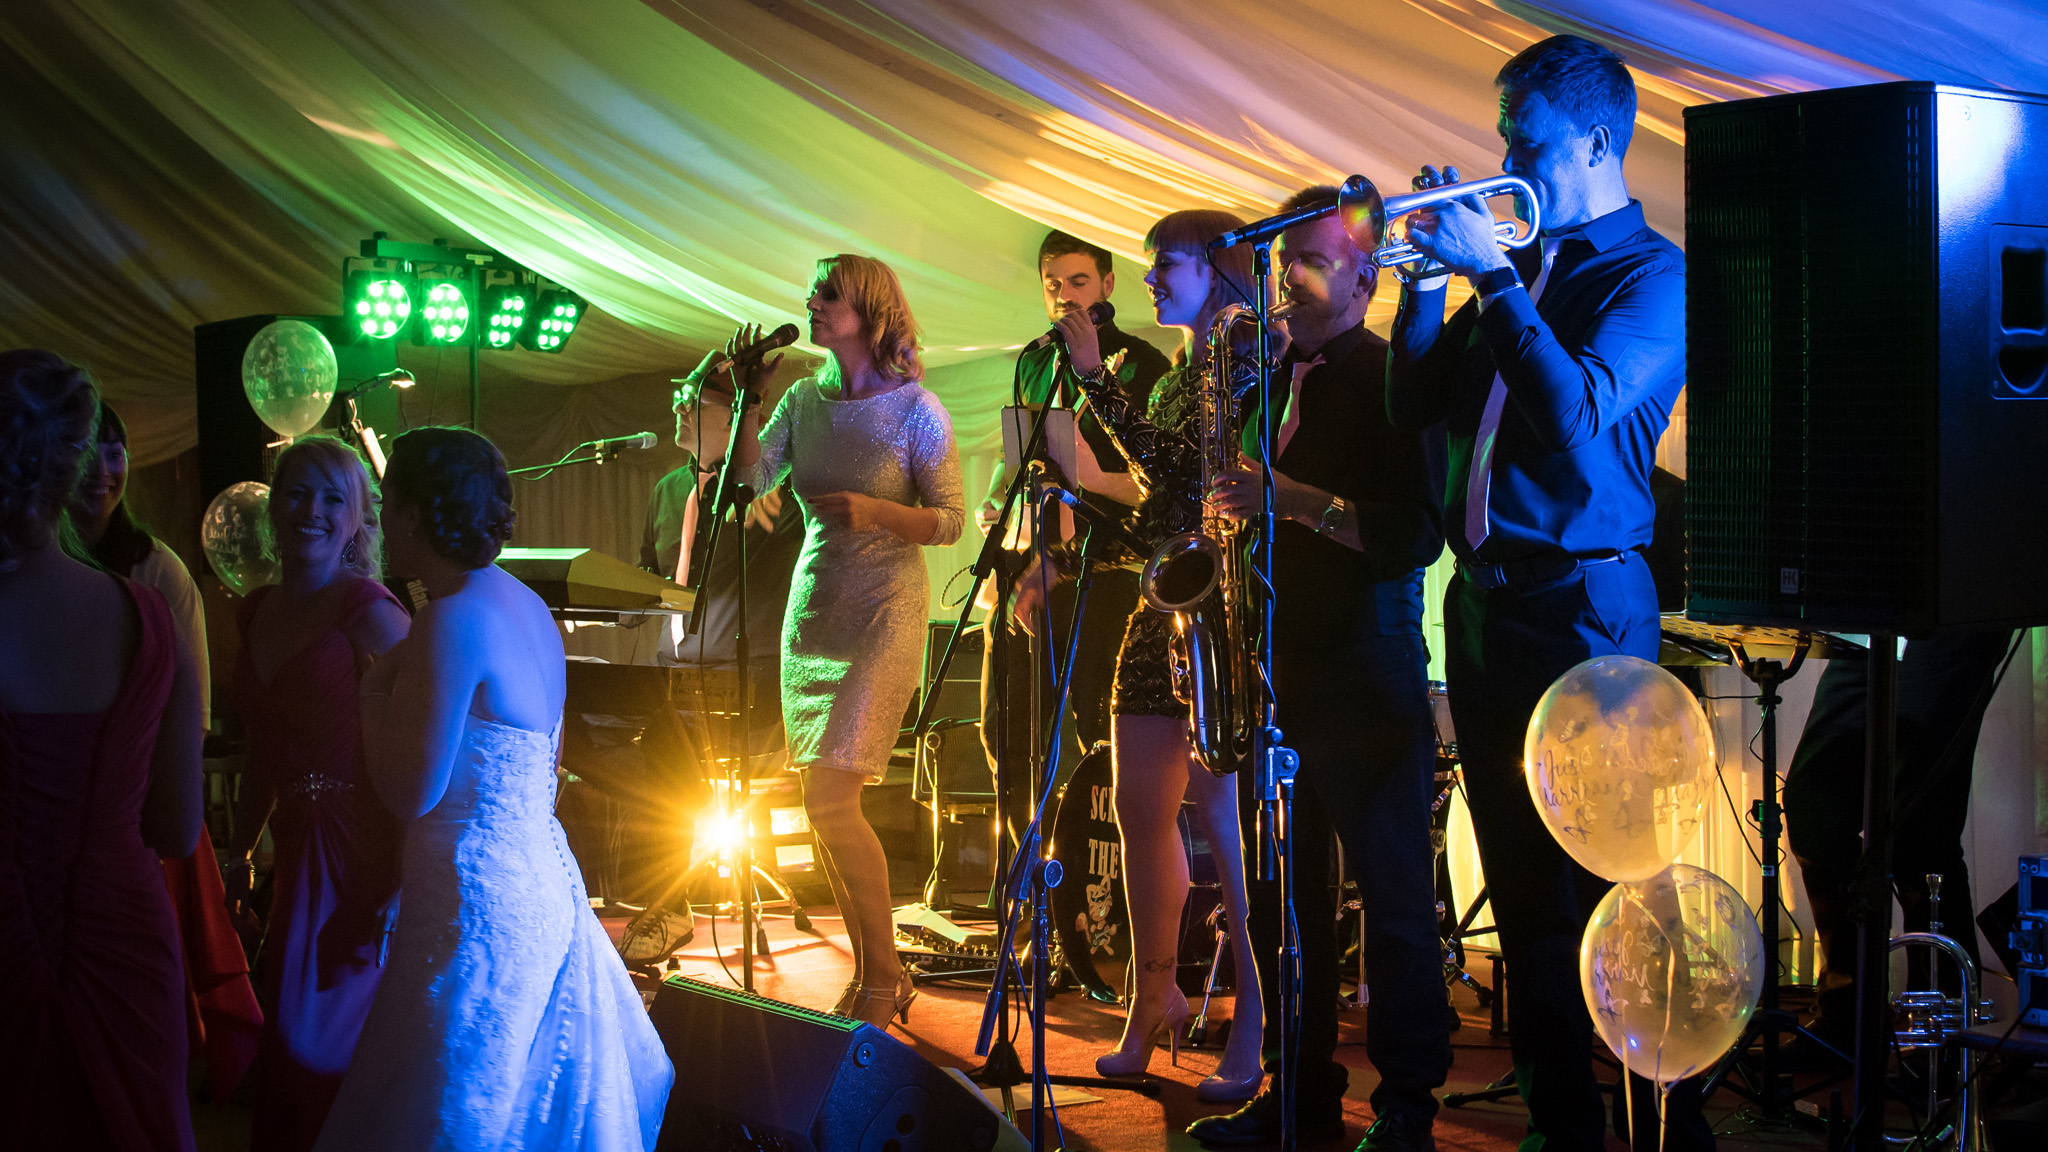 Dancing to the music of Scratch The Cat in a wedding marquee.